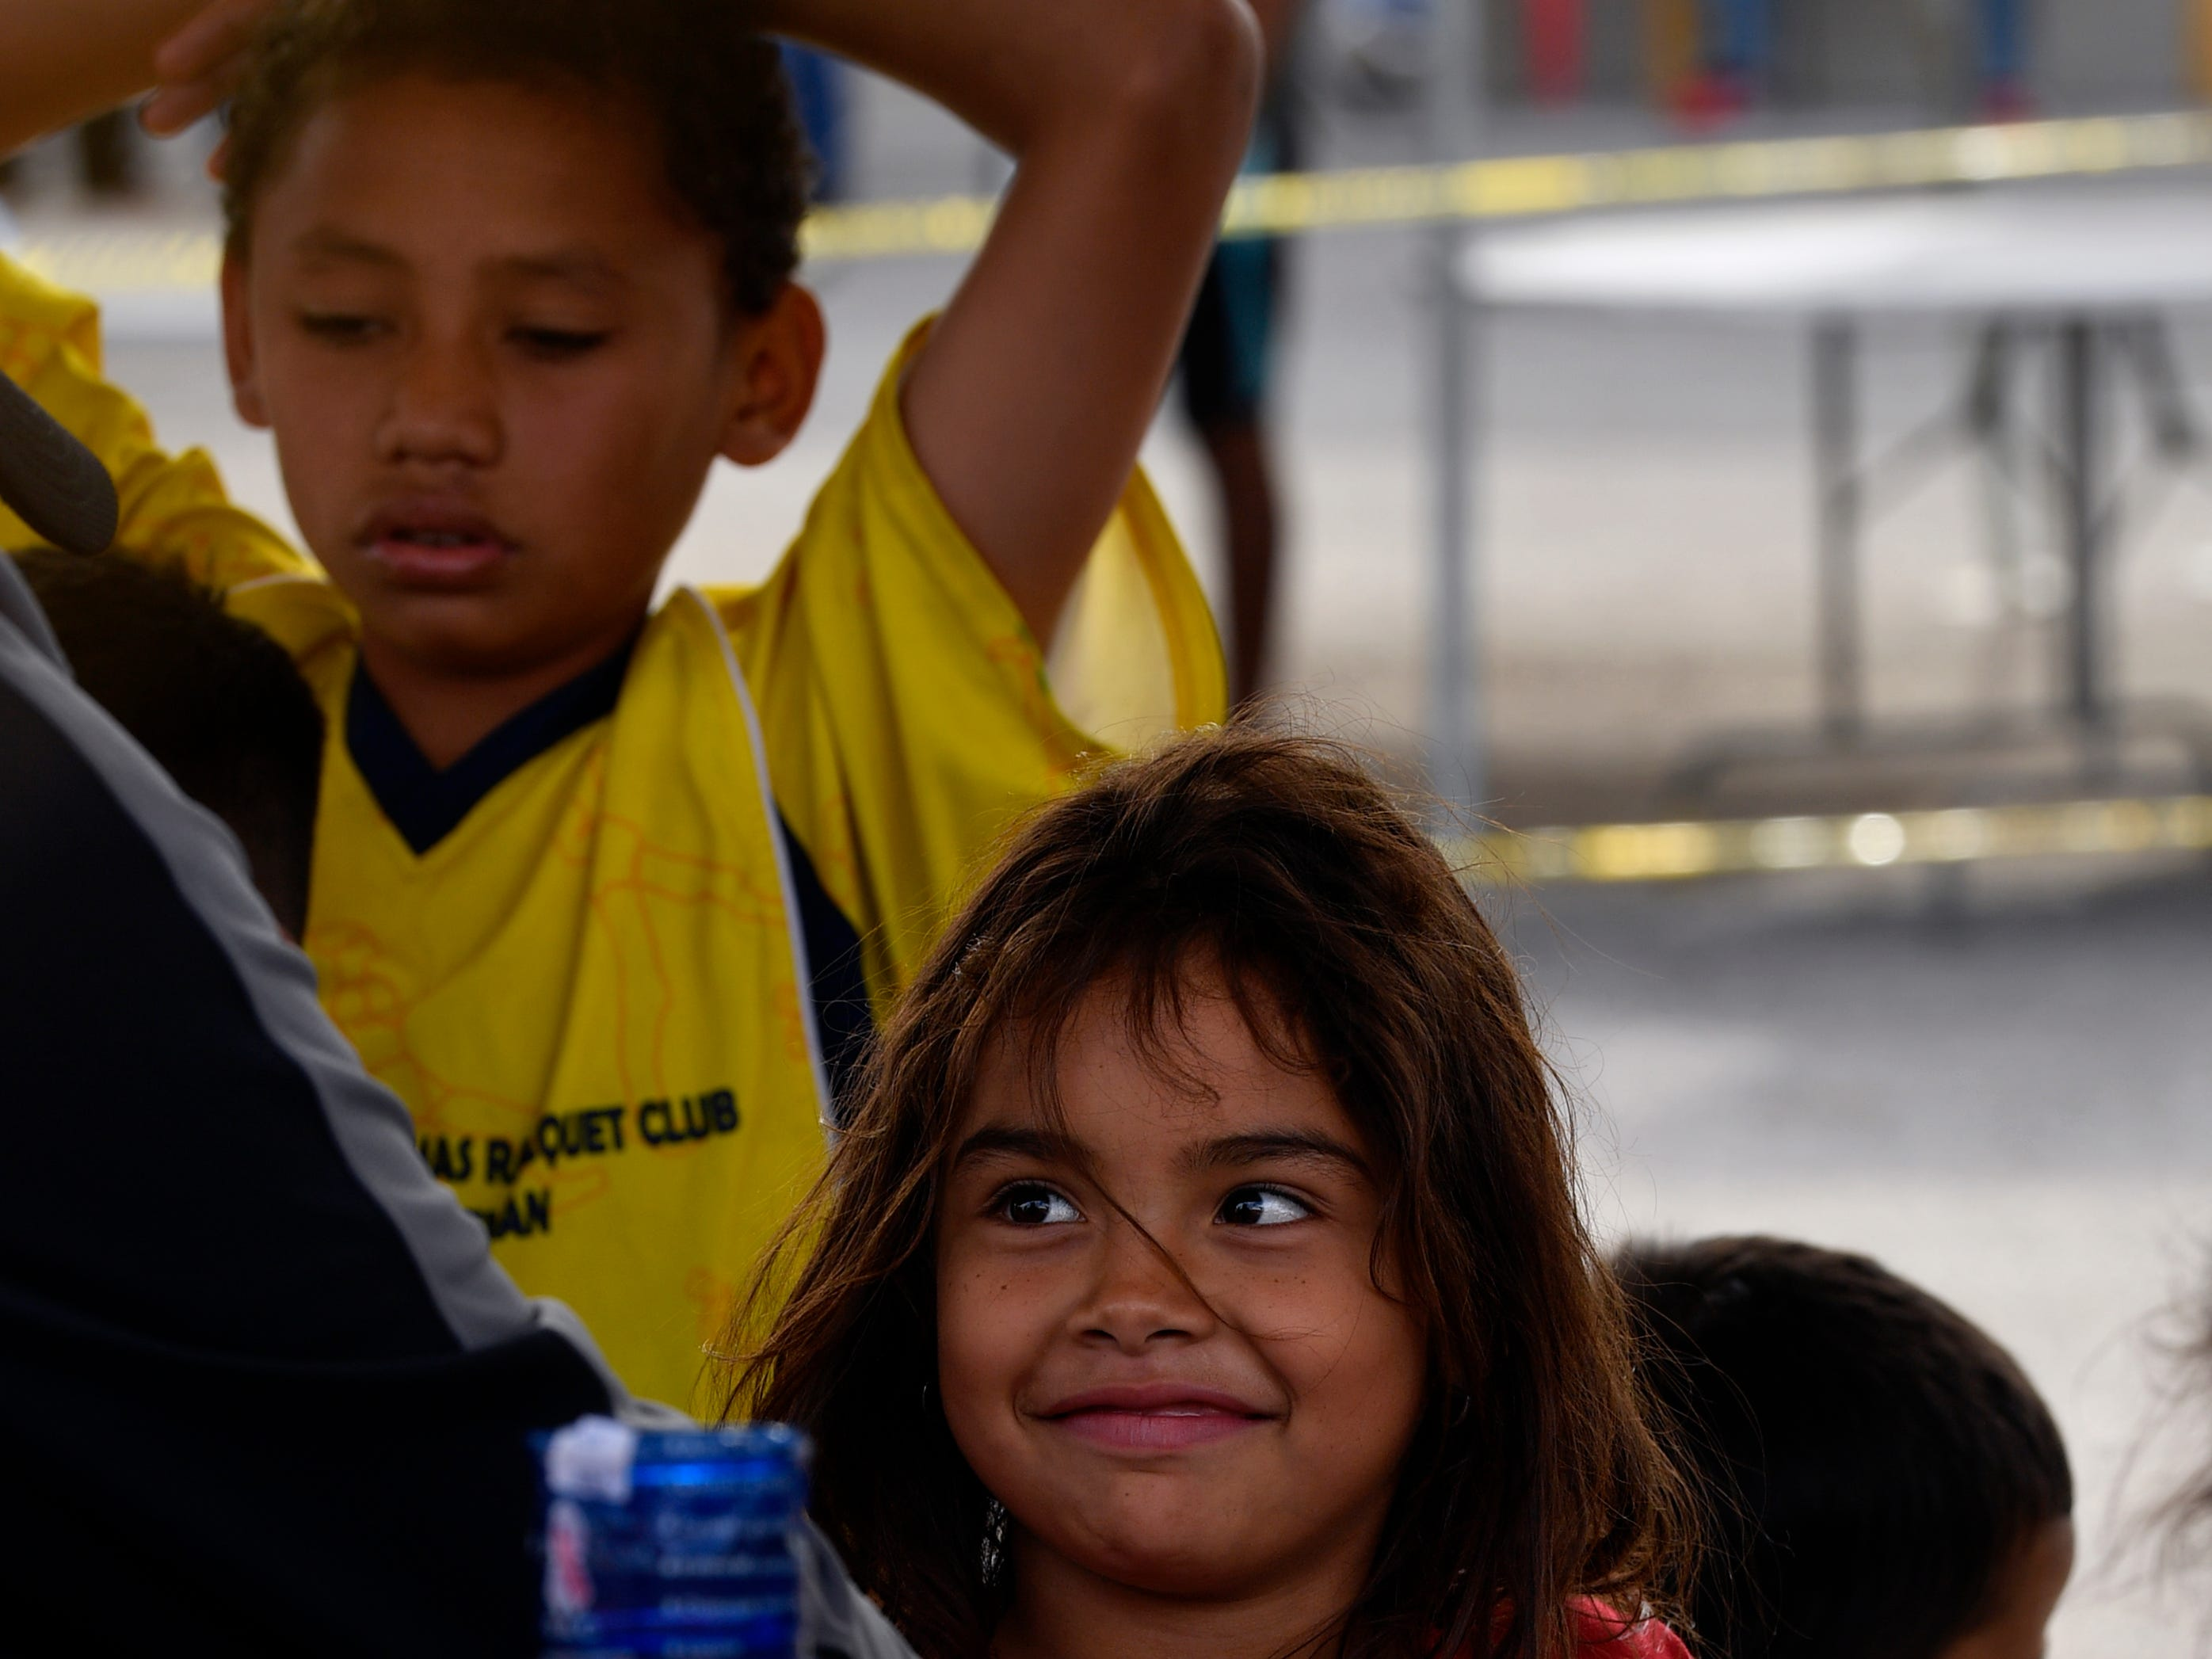 A young girl smiles at an aid worker Thursday Feb. 7, 2019 in the Migrant Hostel in Piedras Negras, Mexico. Dozens of children make up part of the 1,800 Central American migrants who arrived here Monday as a caravan.